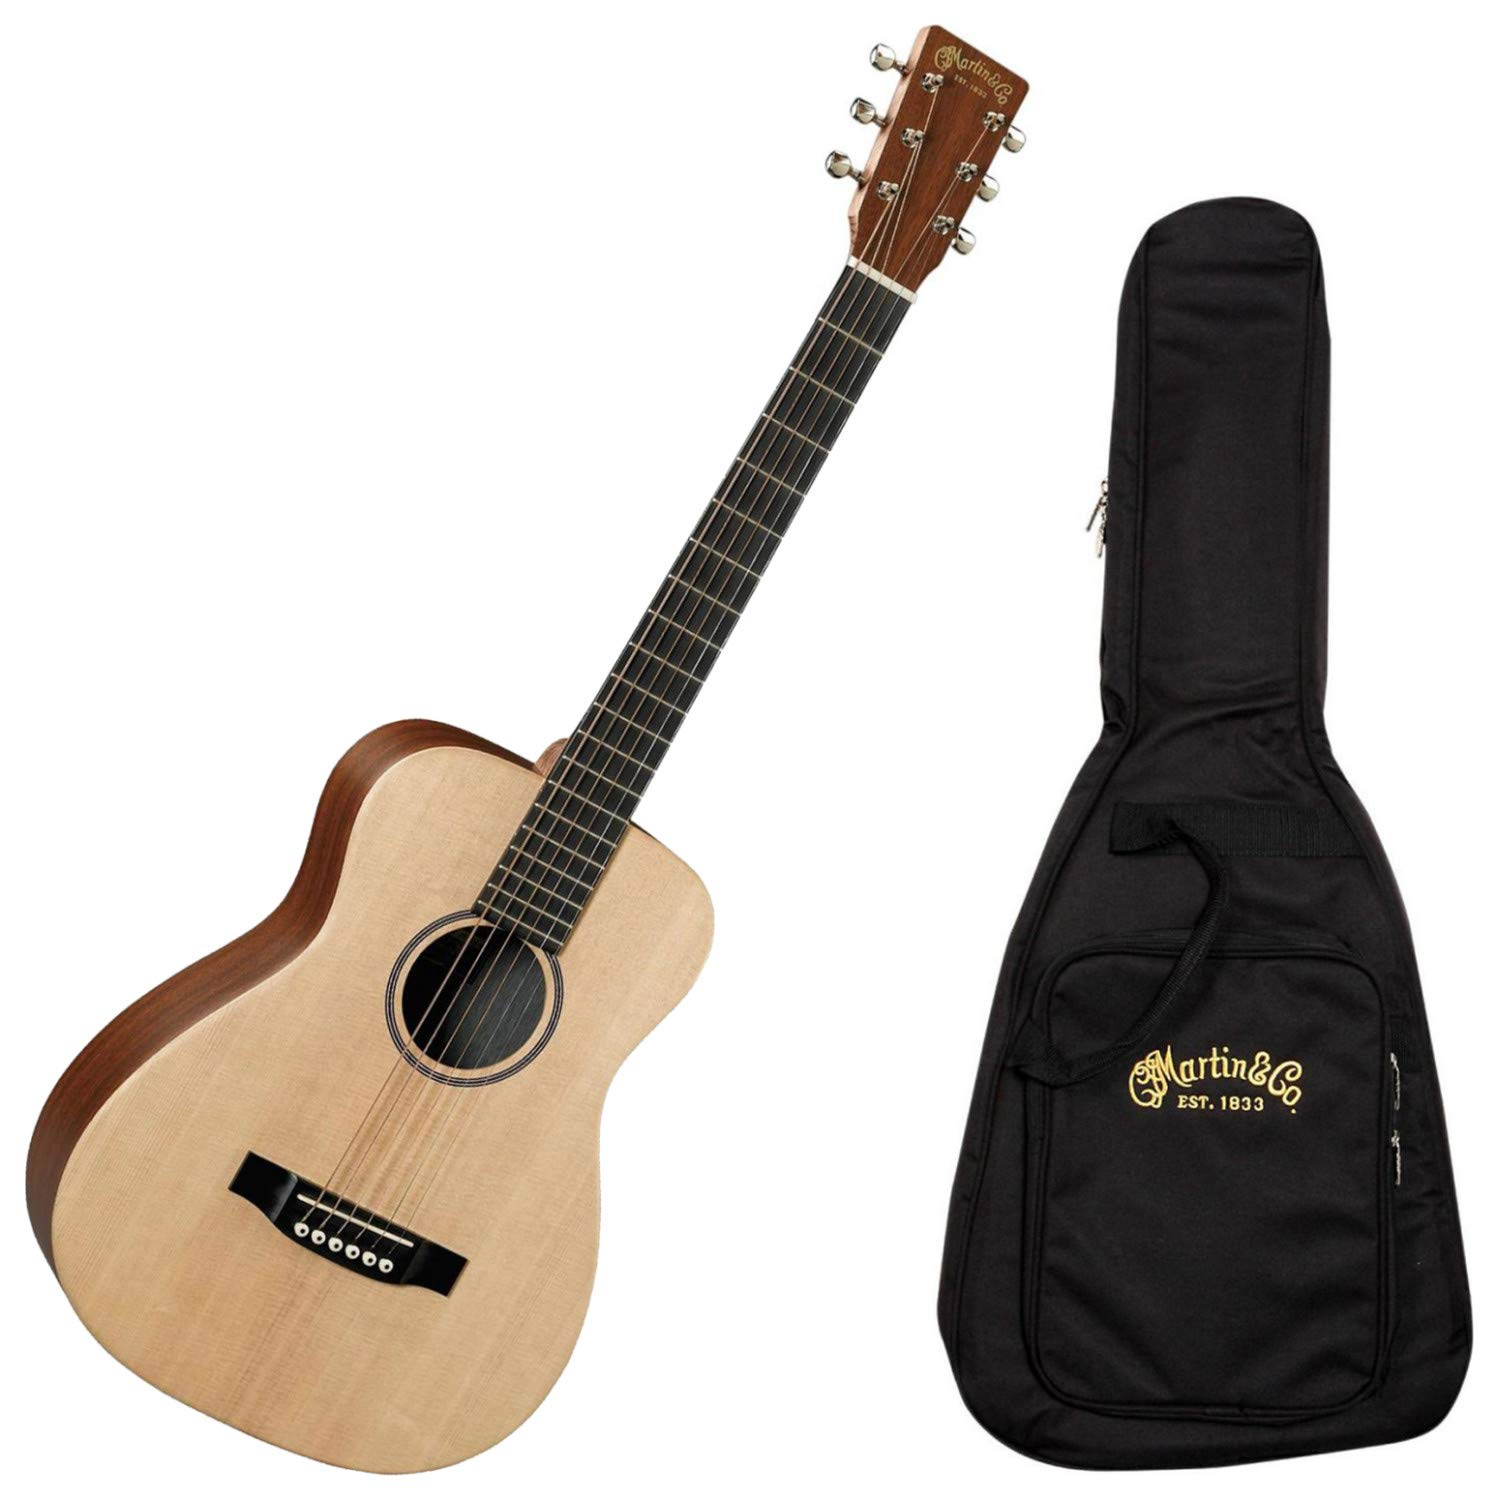 Martin LX1E Little Martin Solid Sitka Spruce/Mahogany HPL Acoustic/Electric w/Gig Bag by C.F. Martin & Co.